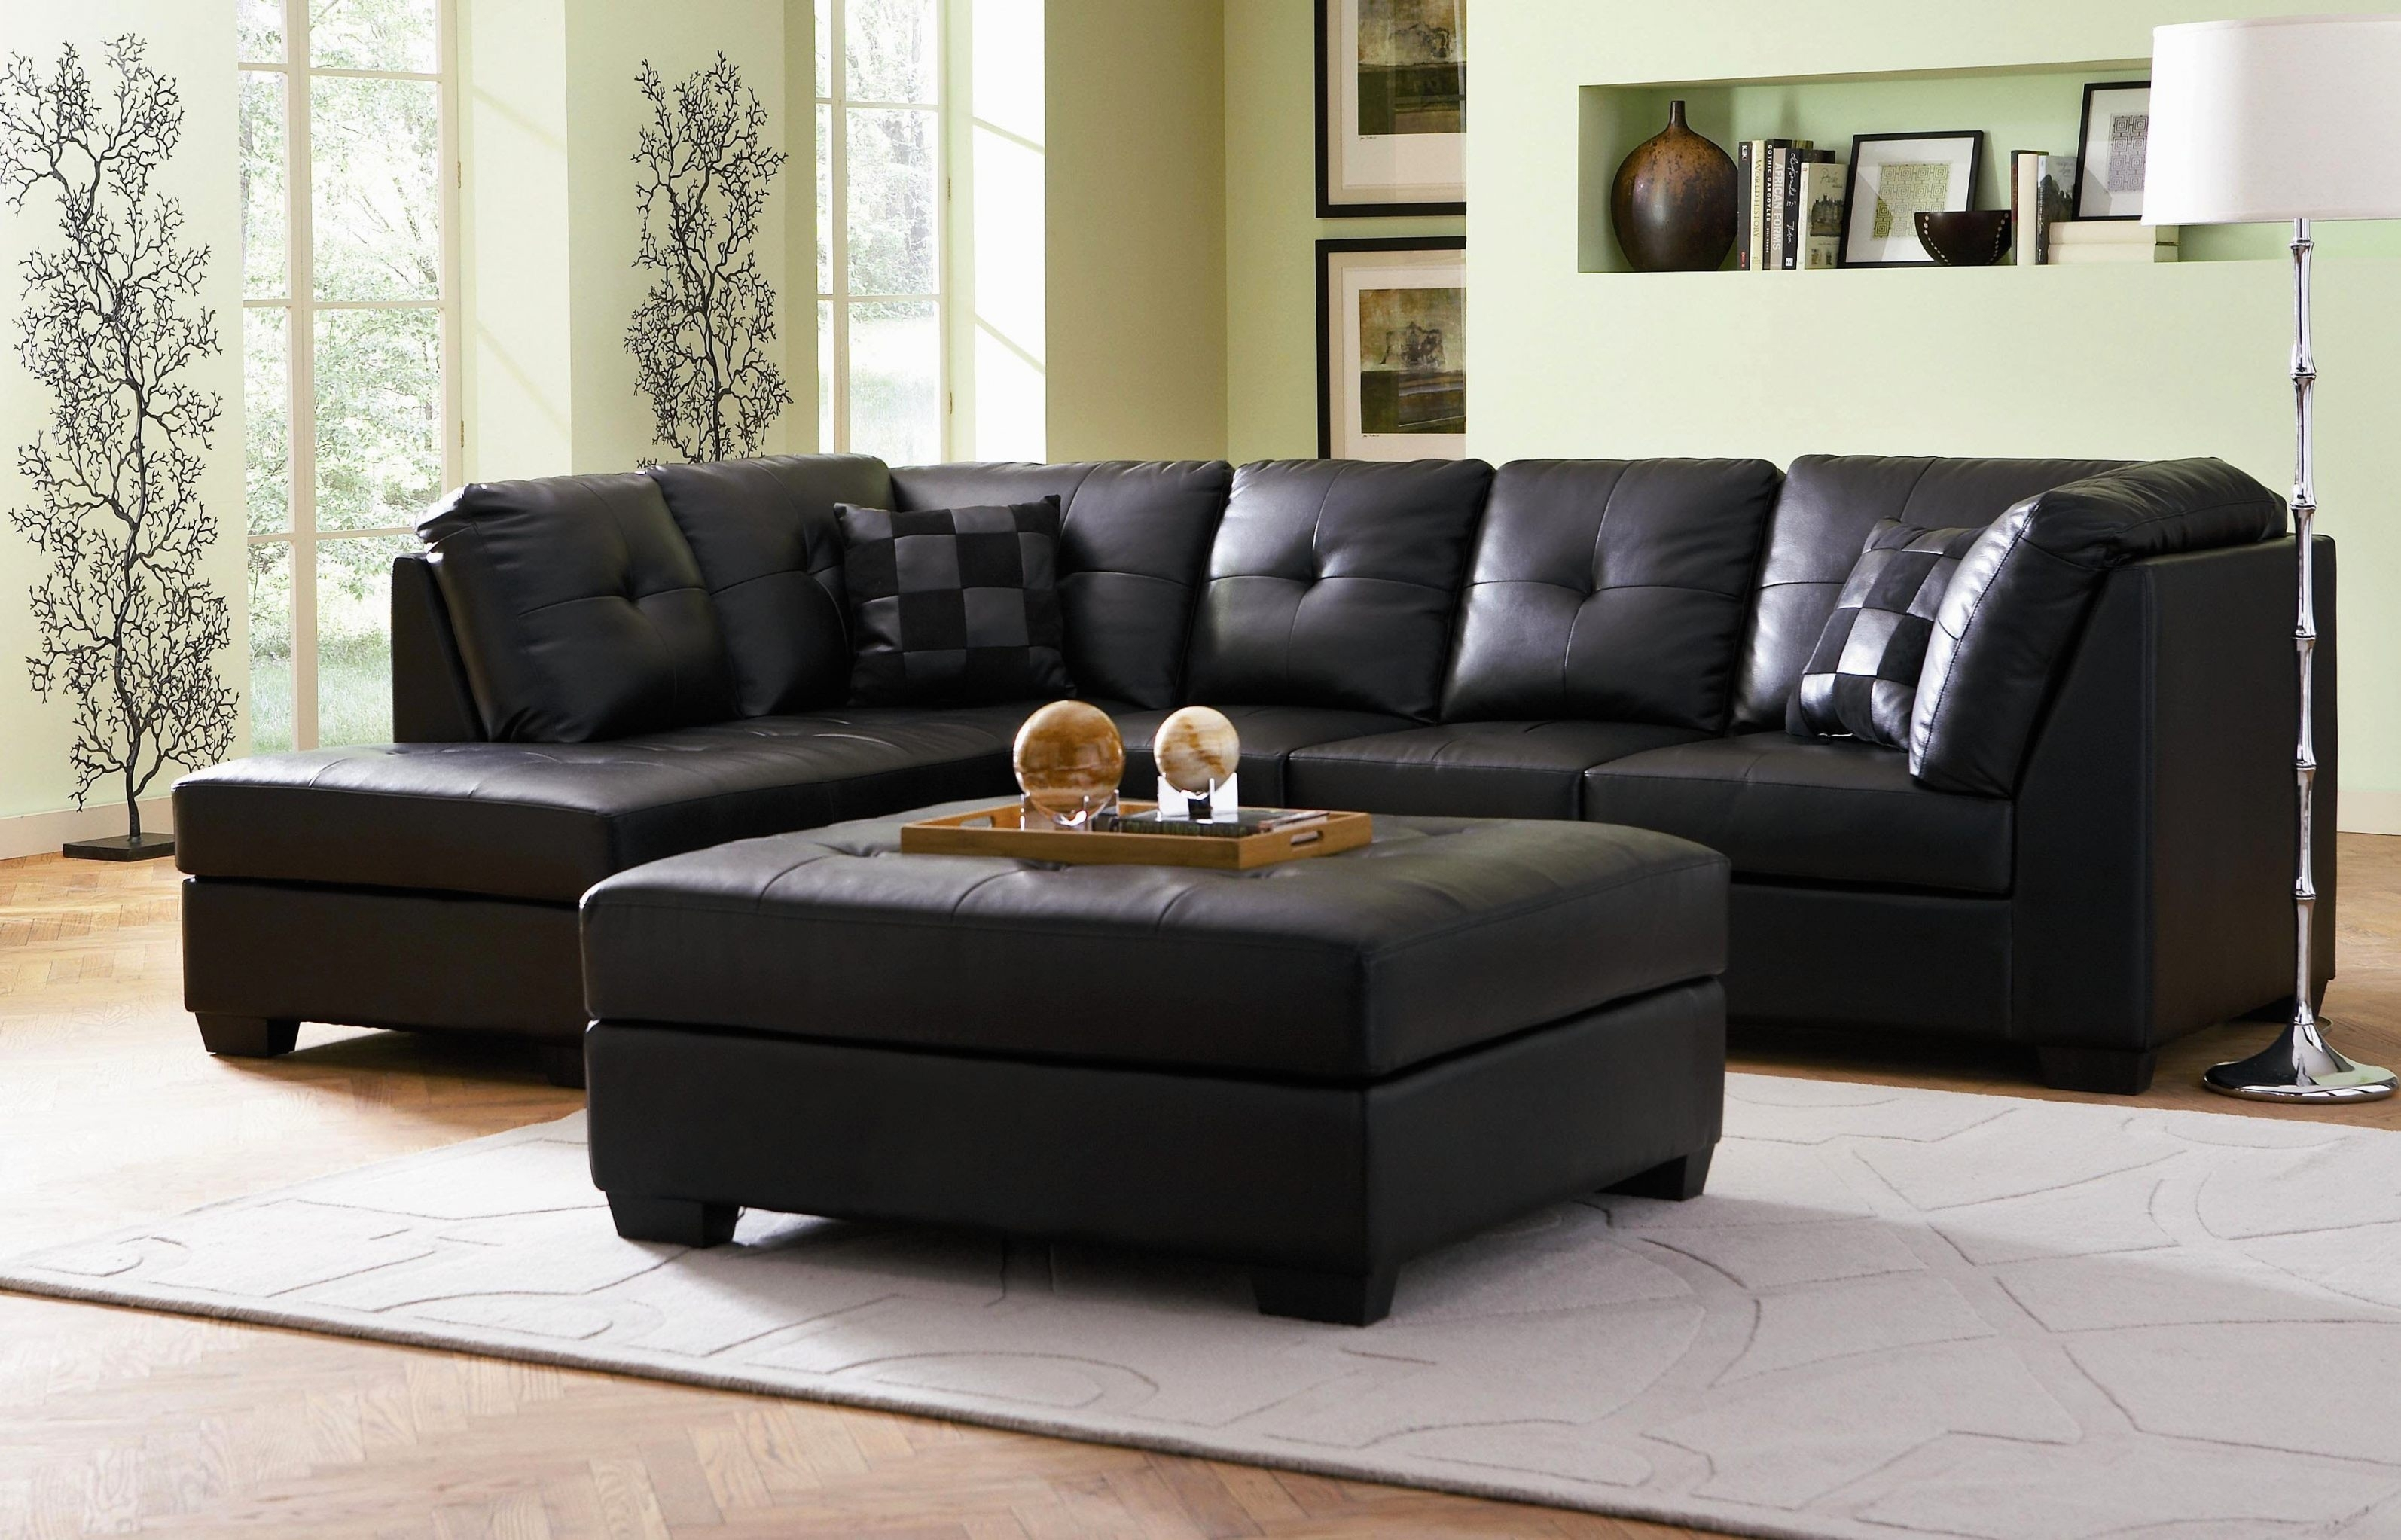 Superior Affordable Sectionals Sofas #2 Remarkable Cheap Sectional within Denver Sectional Sofas (Image 10 of 10)